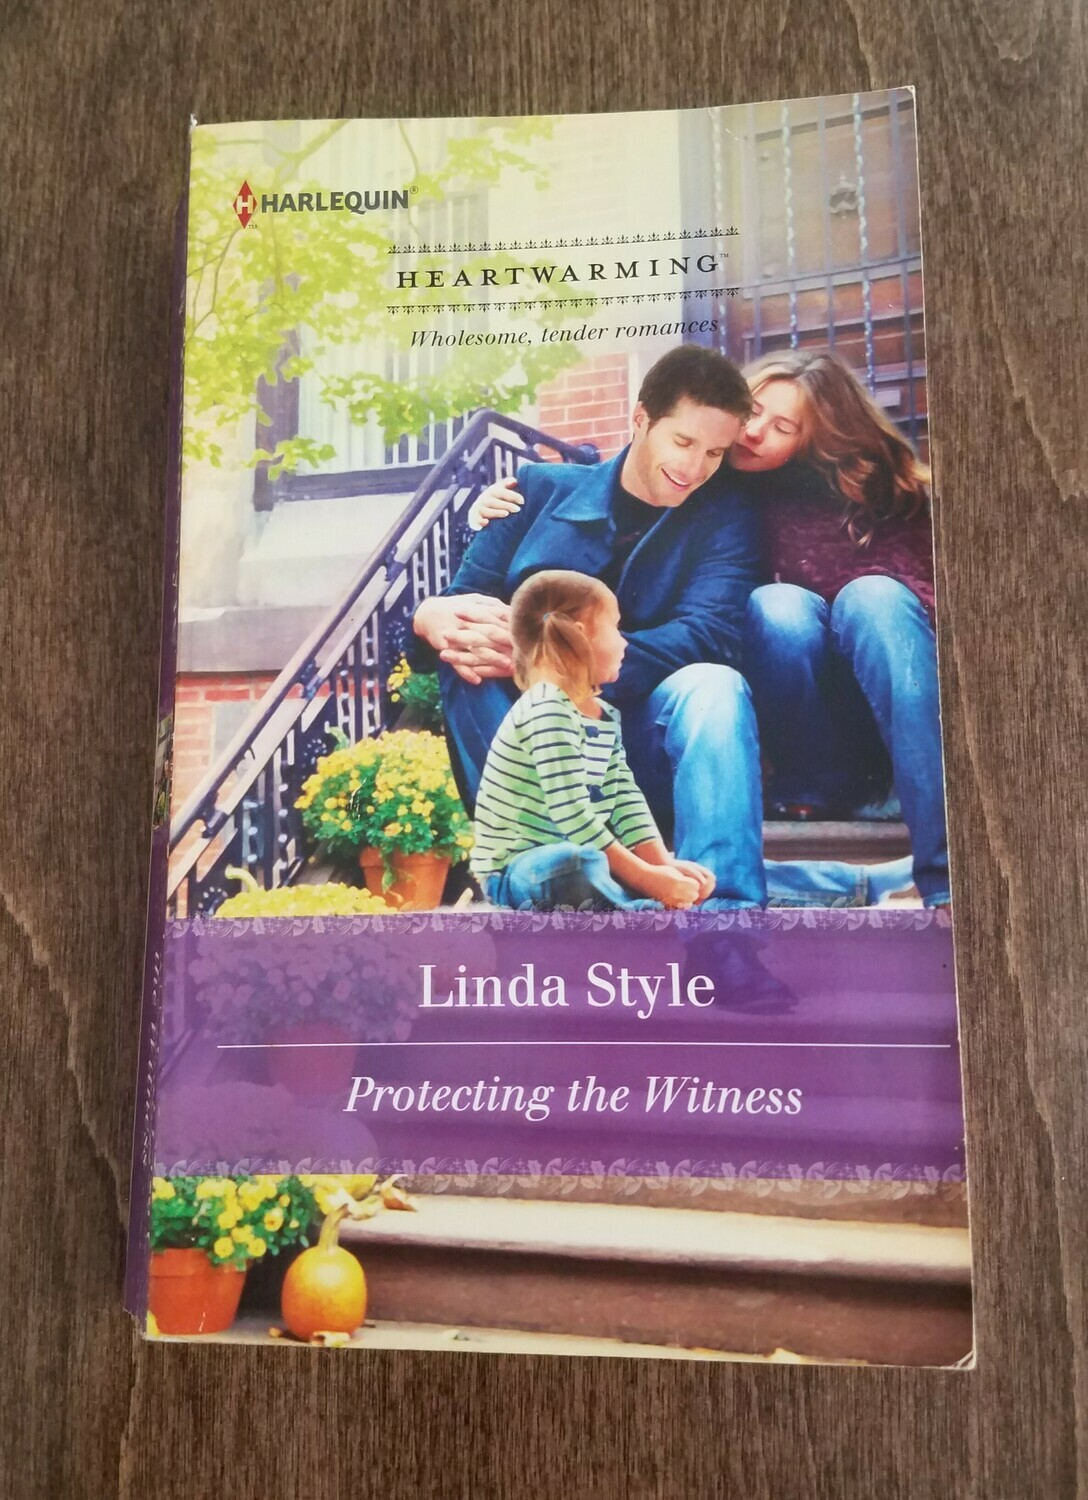 Protecting the Witness by Linda Style